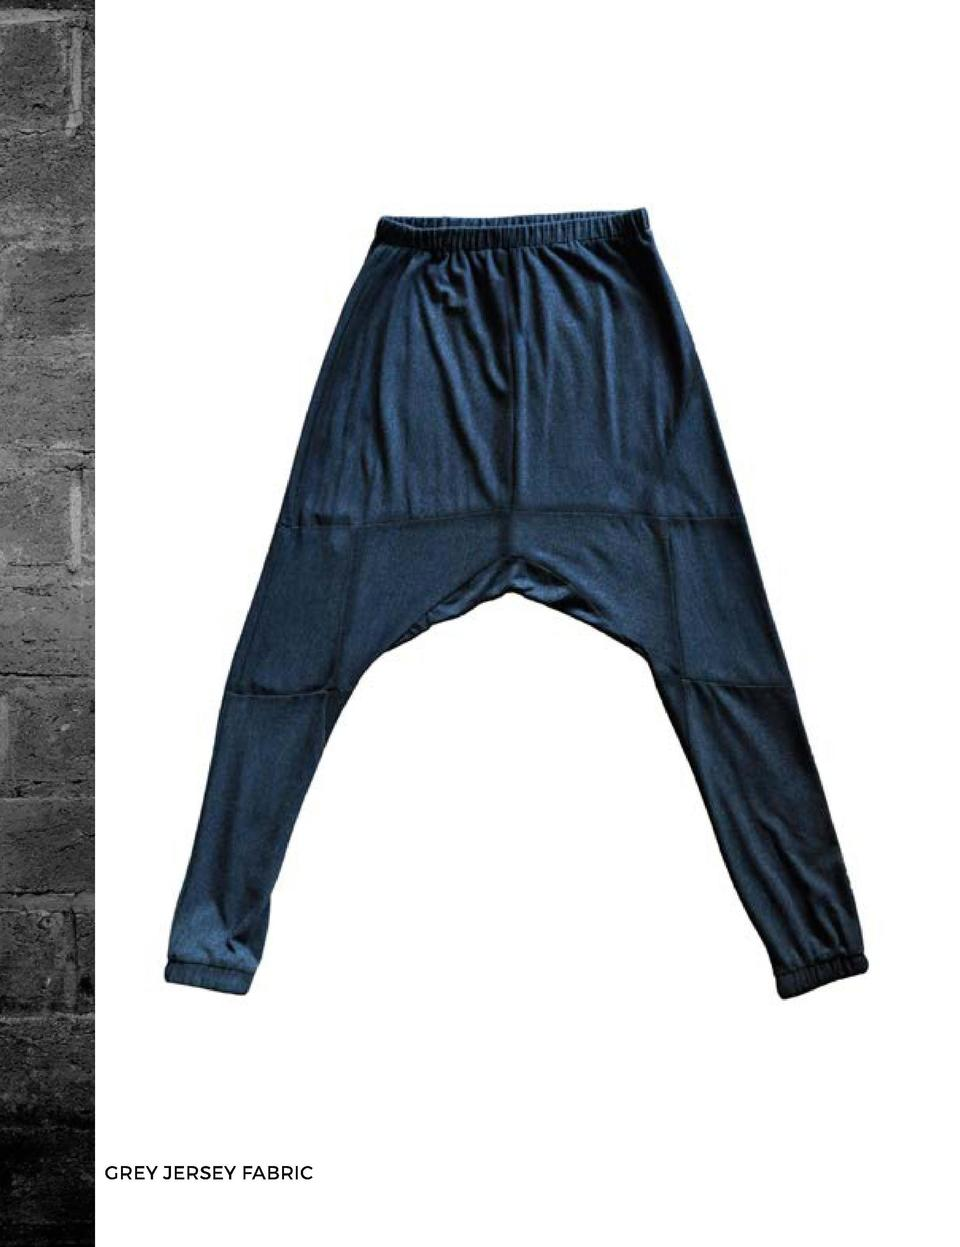 THE BOLTED JOGGER PANTS GREY JERSEY FABRIC